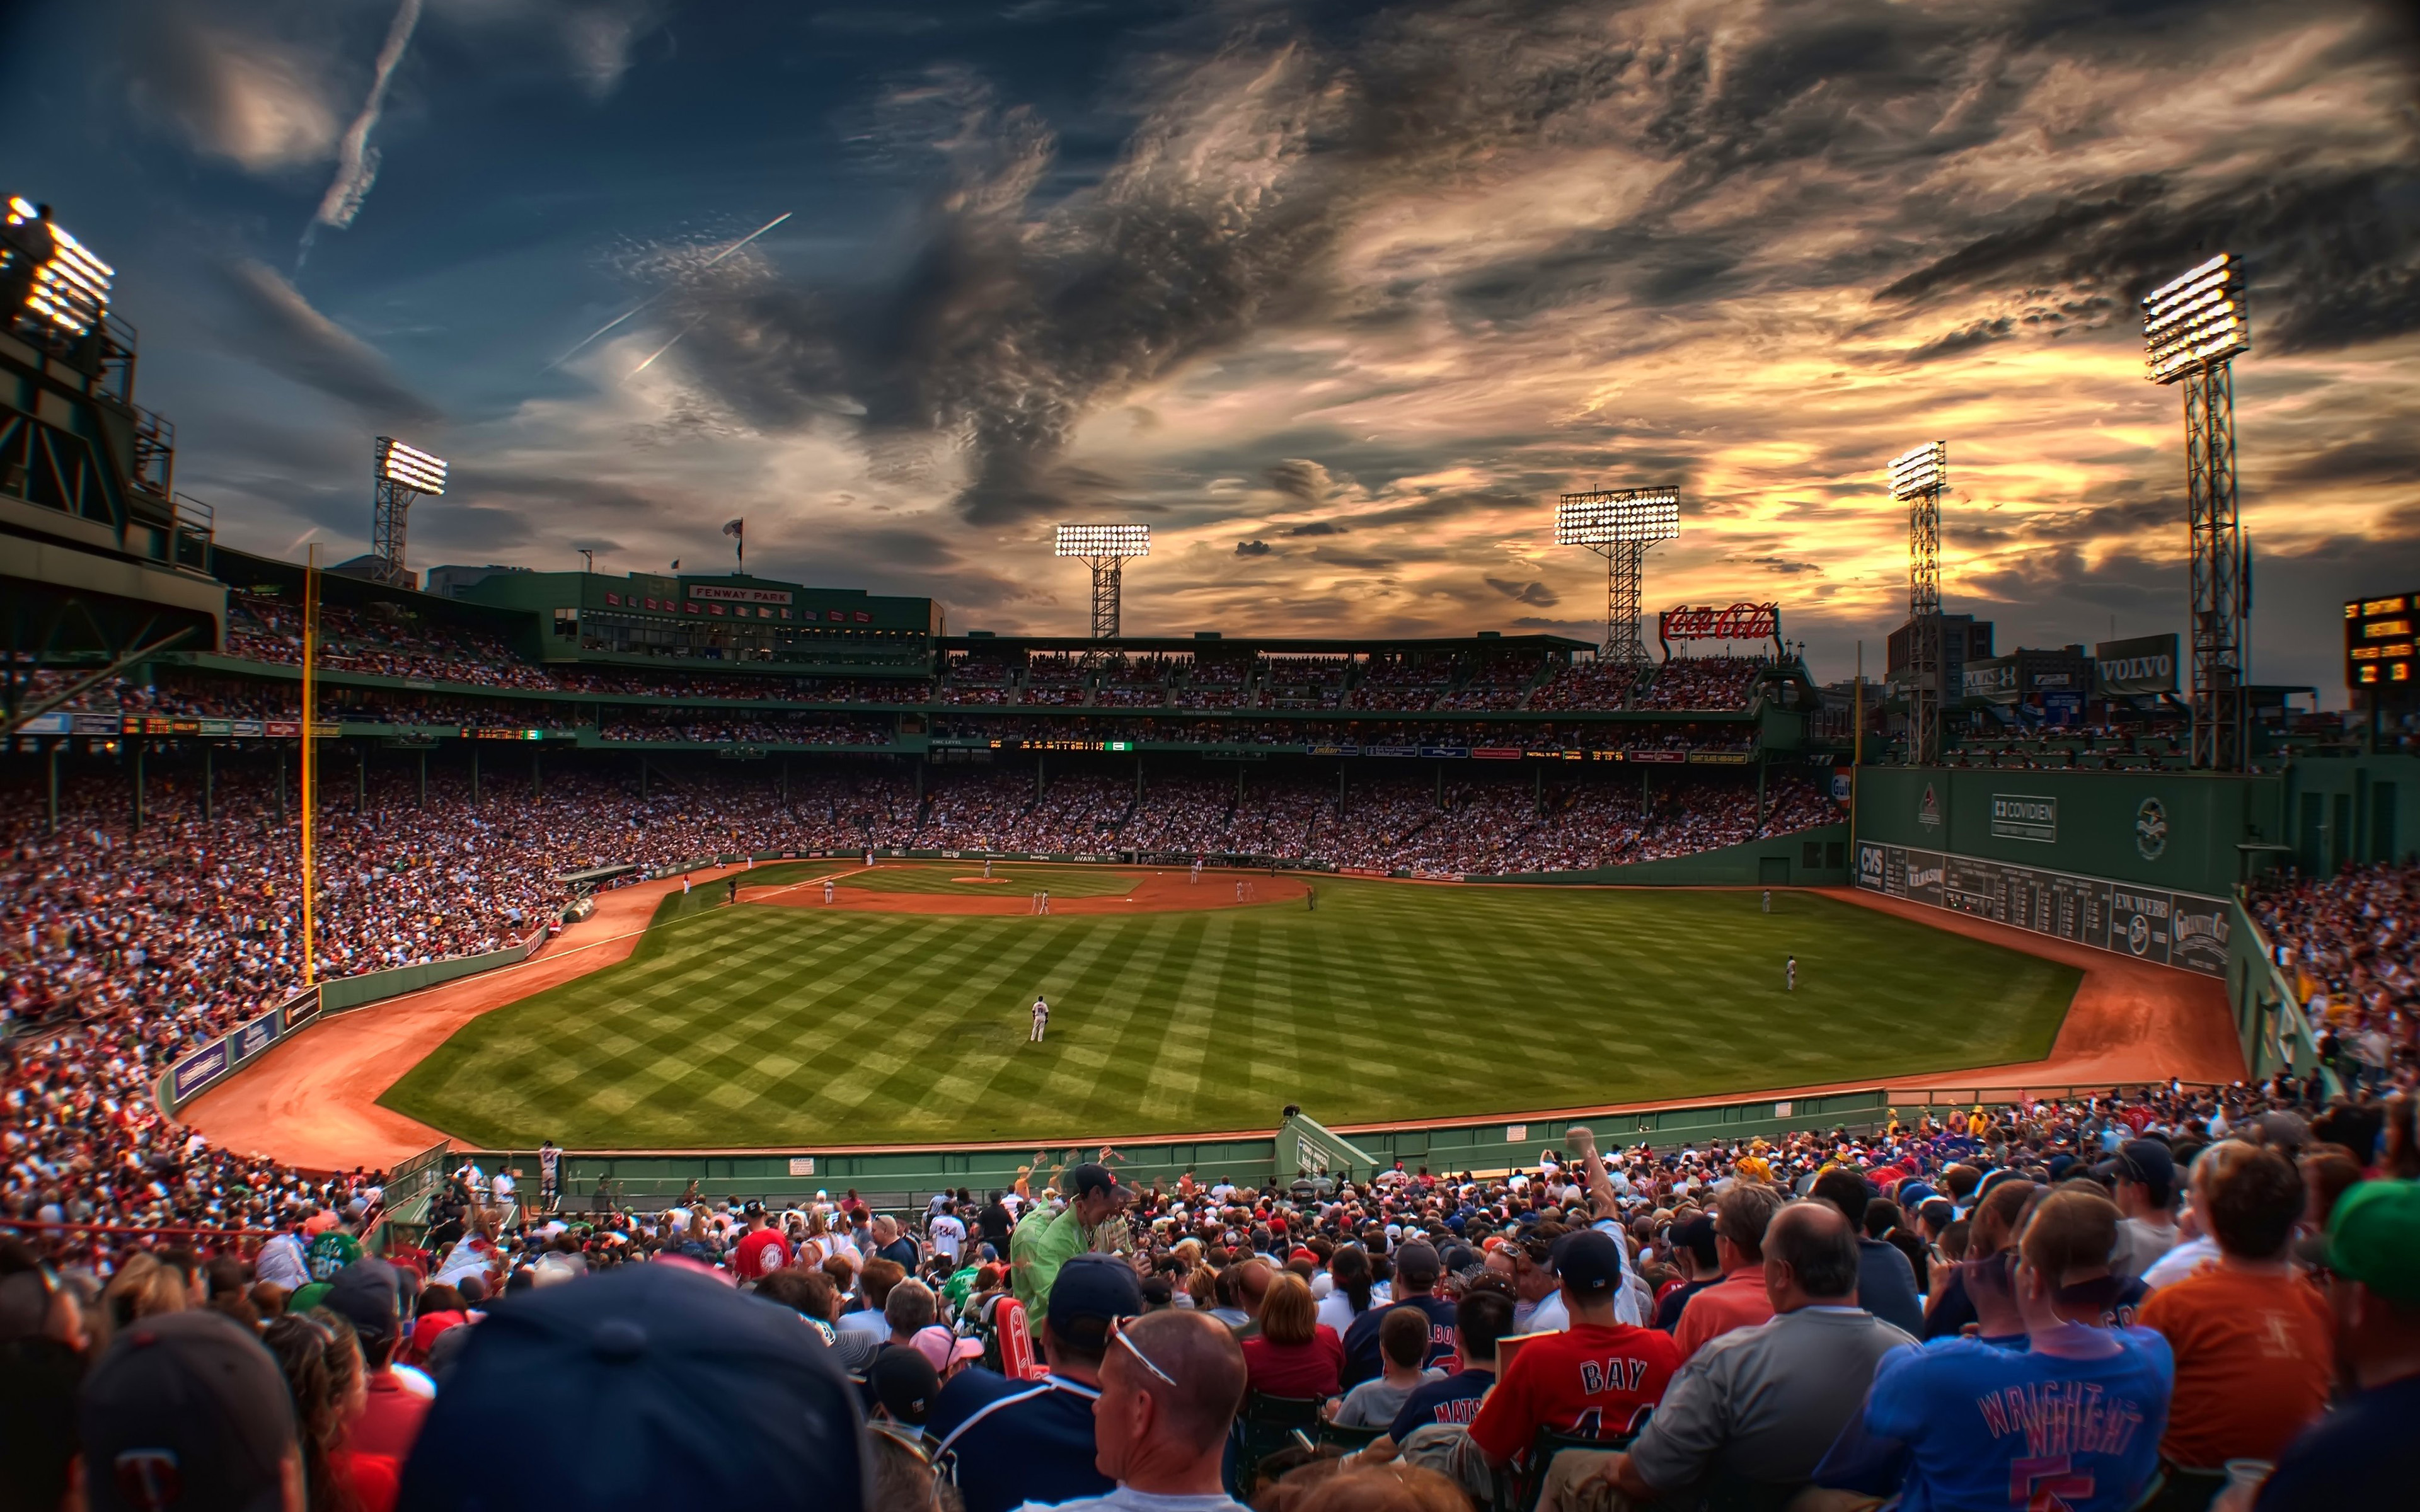 Boston Red Sox Fenway Park MLB   Clip Art Library 3840x2400